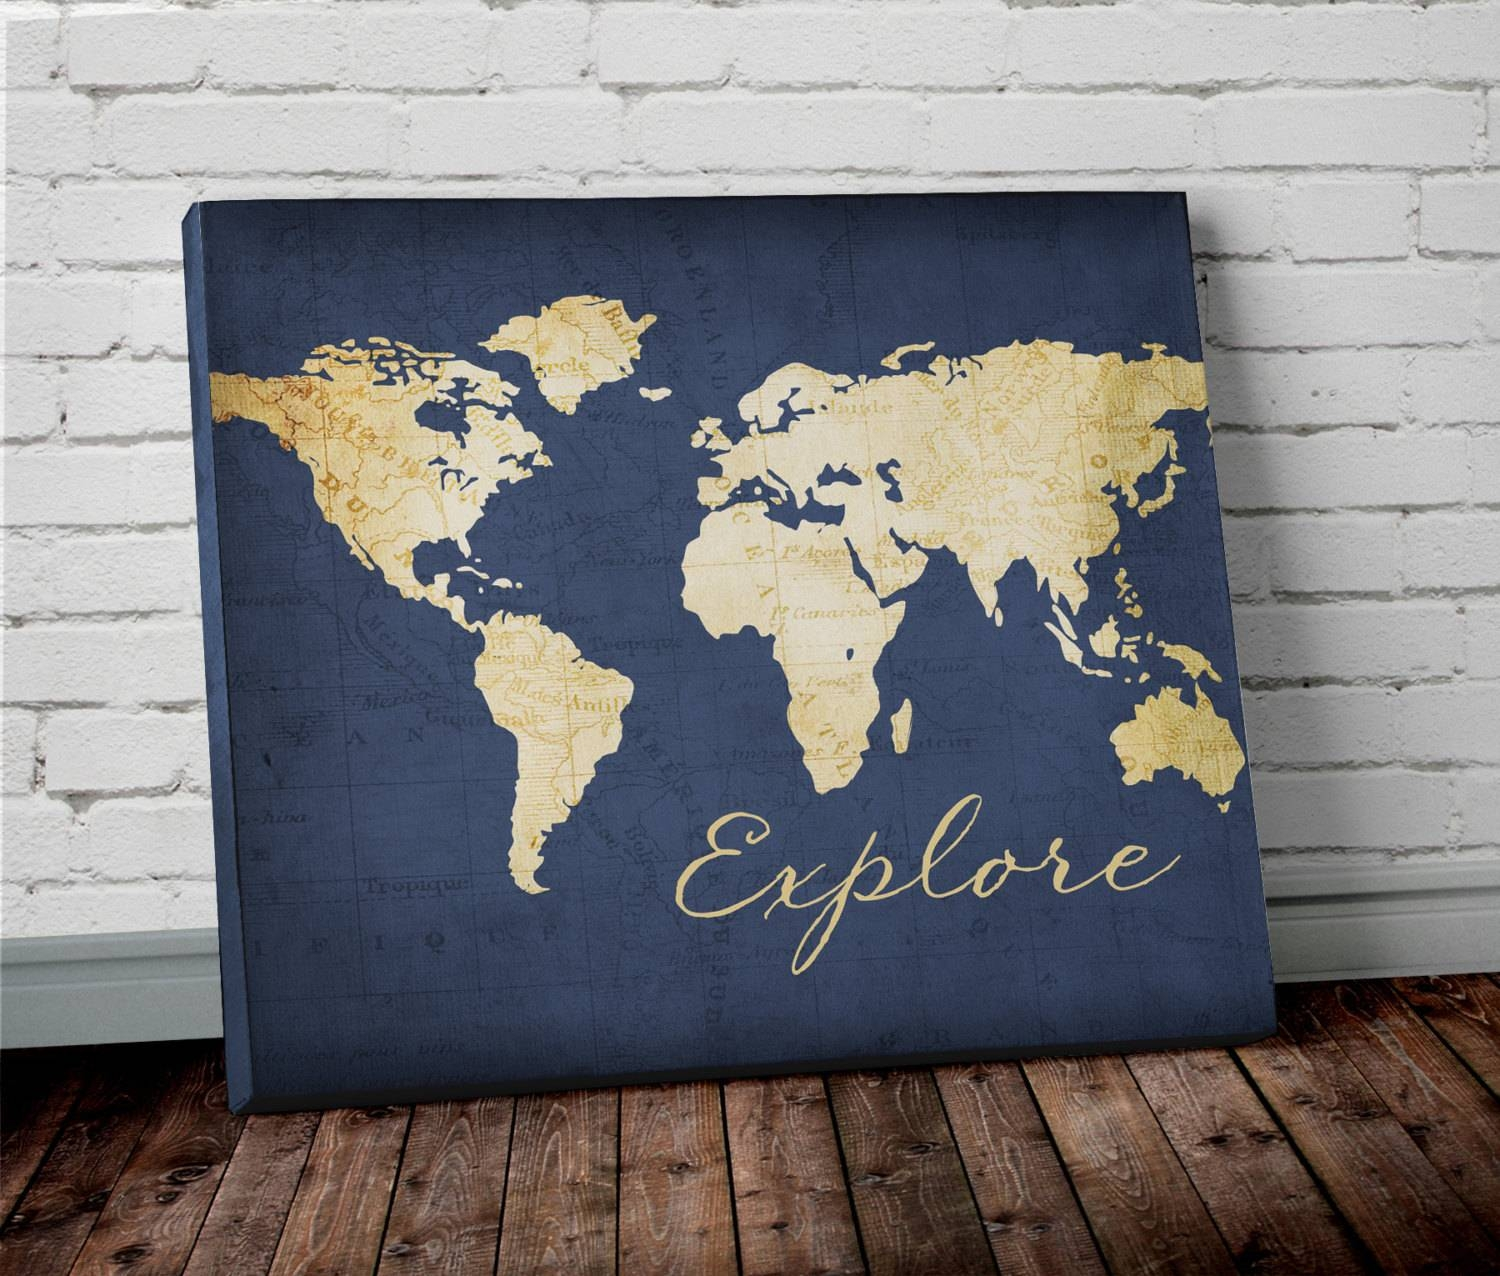 Explore World Map Wall Art Canvas World Map Print In Navy Throughout Most Recently Released Map Wall Art Prints (View 4 of 20)